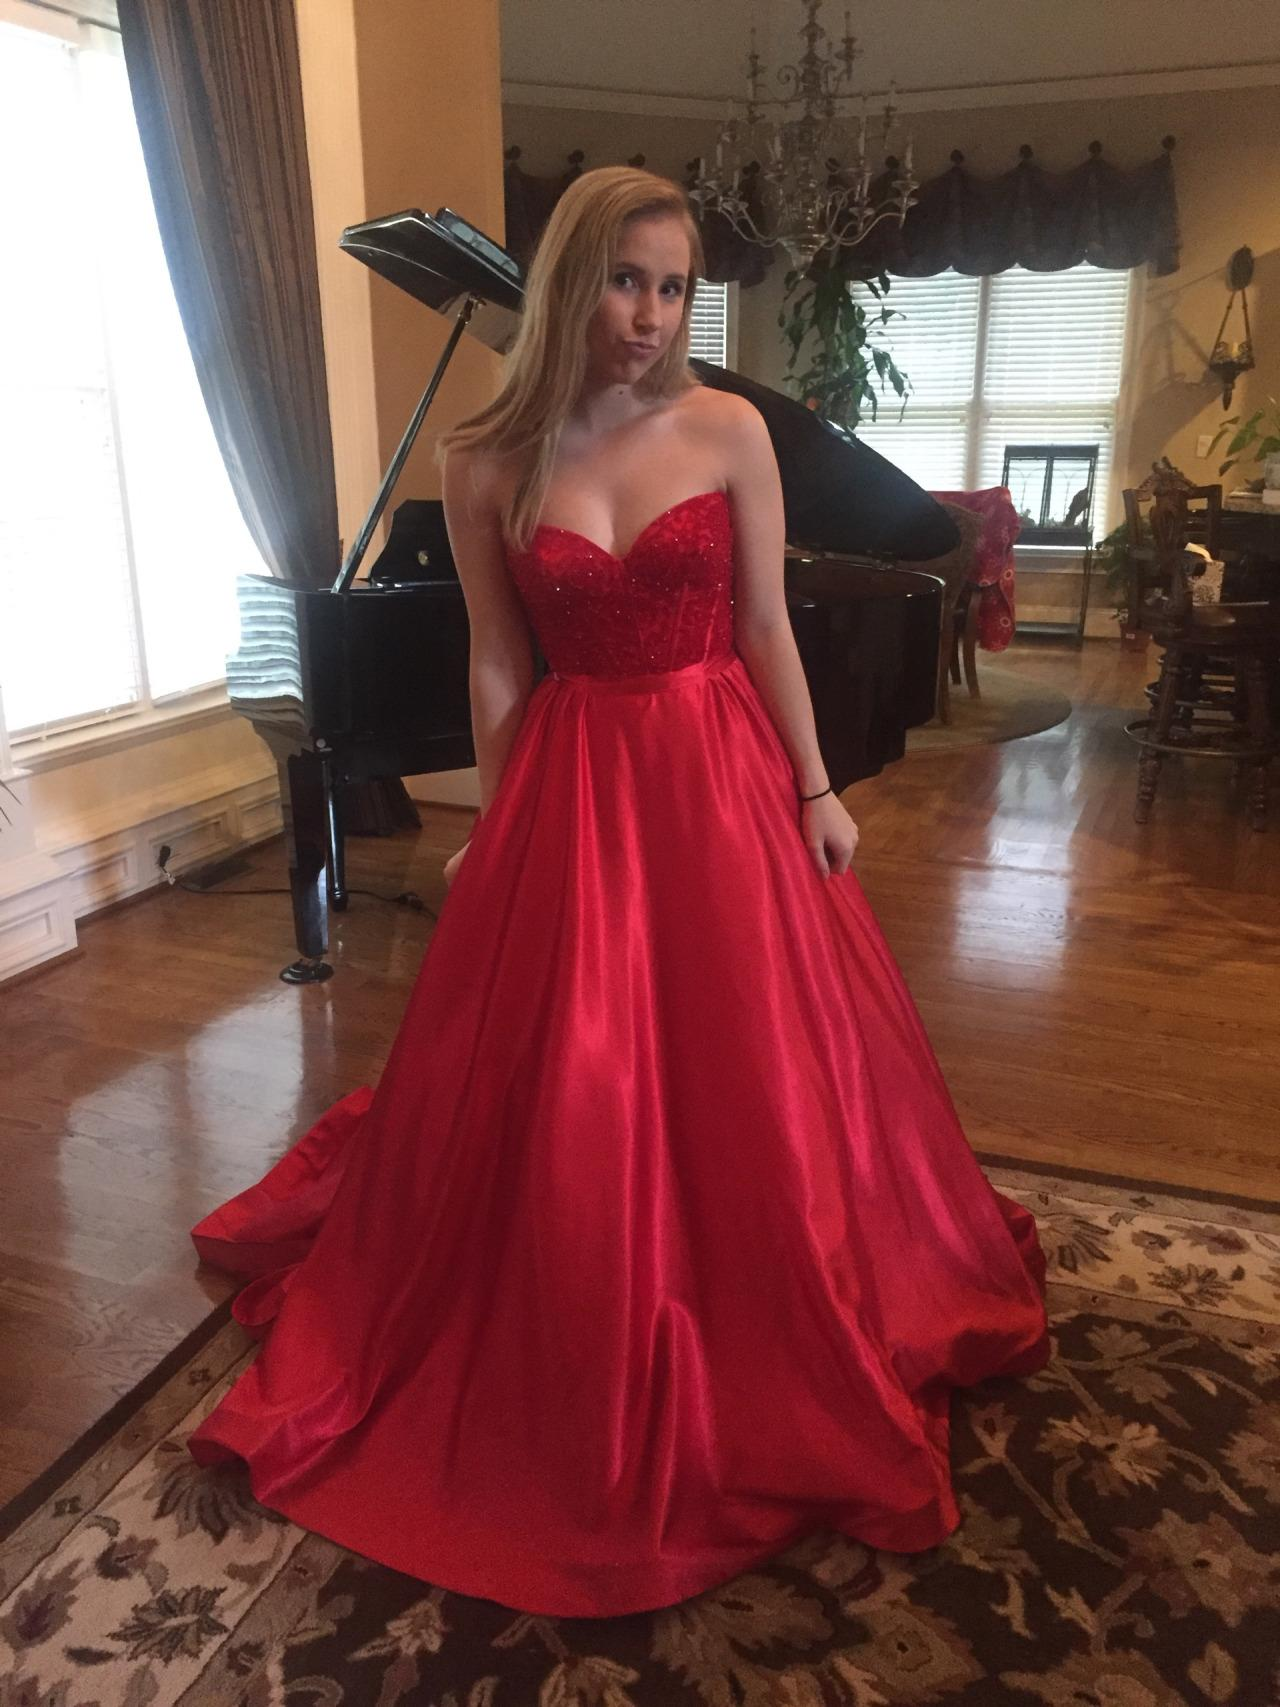 Red Lace A Line Pageant Evening Dresses Women's Sweetheart Bridal Gown Special Occasion Prom Bridesmaid Party Dress 17LF413